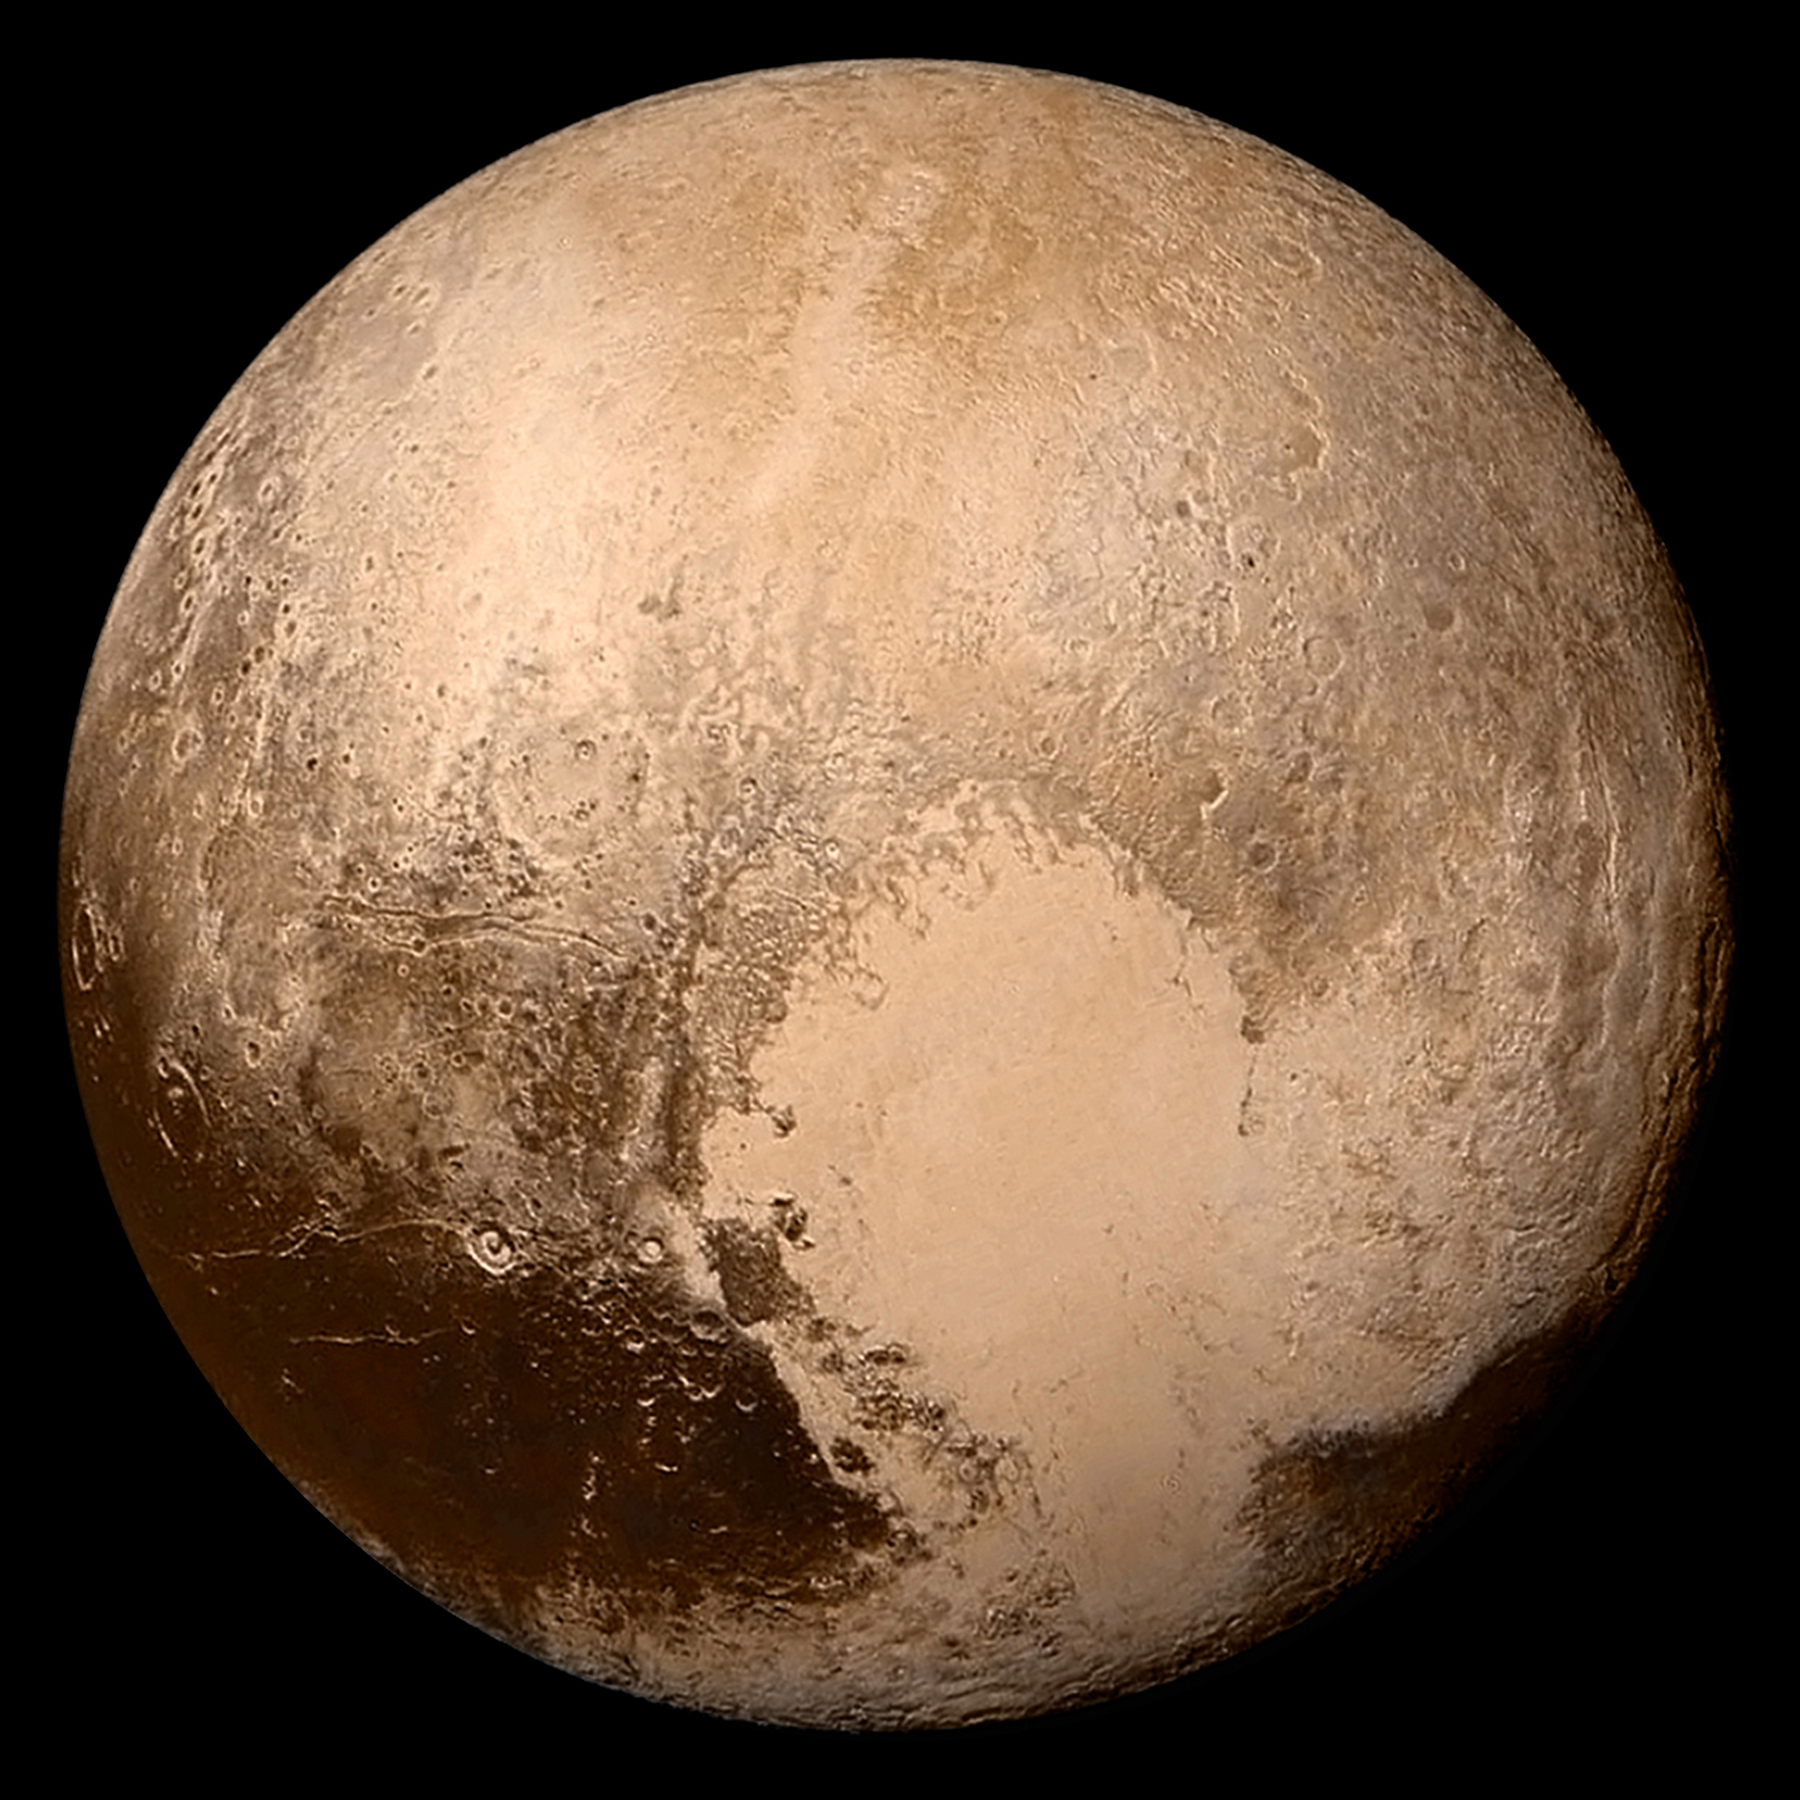 Image of The dwarf planet Pluto, left, and its moon Charon.